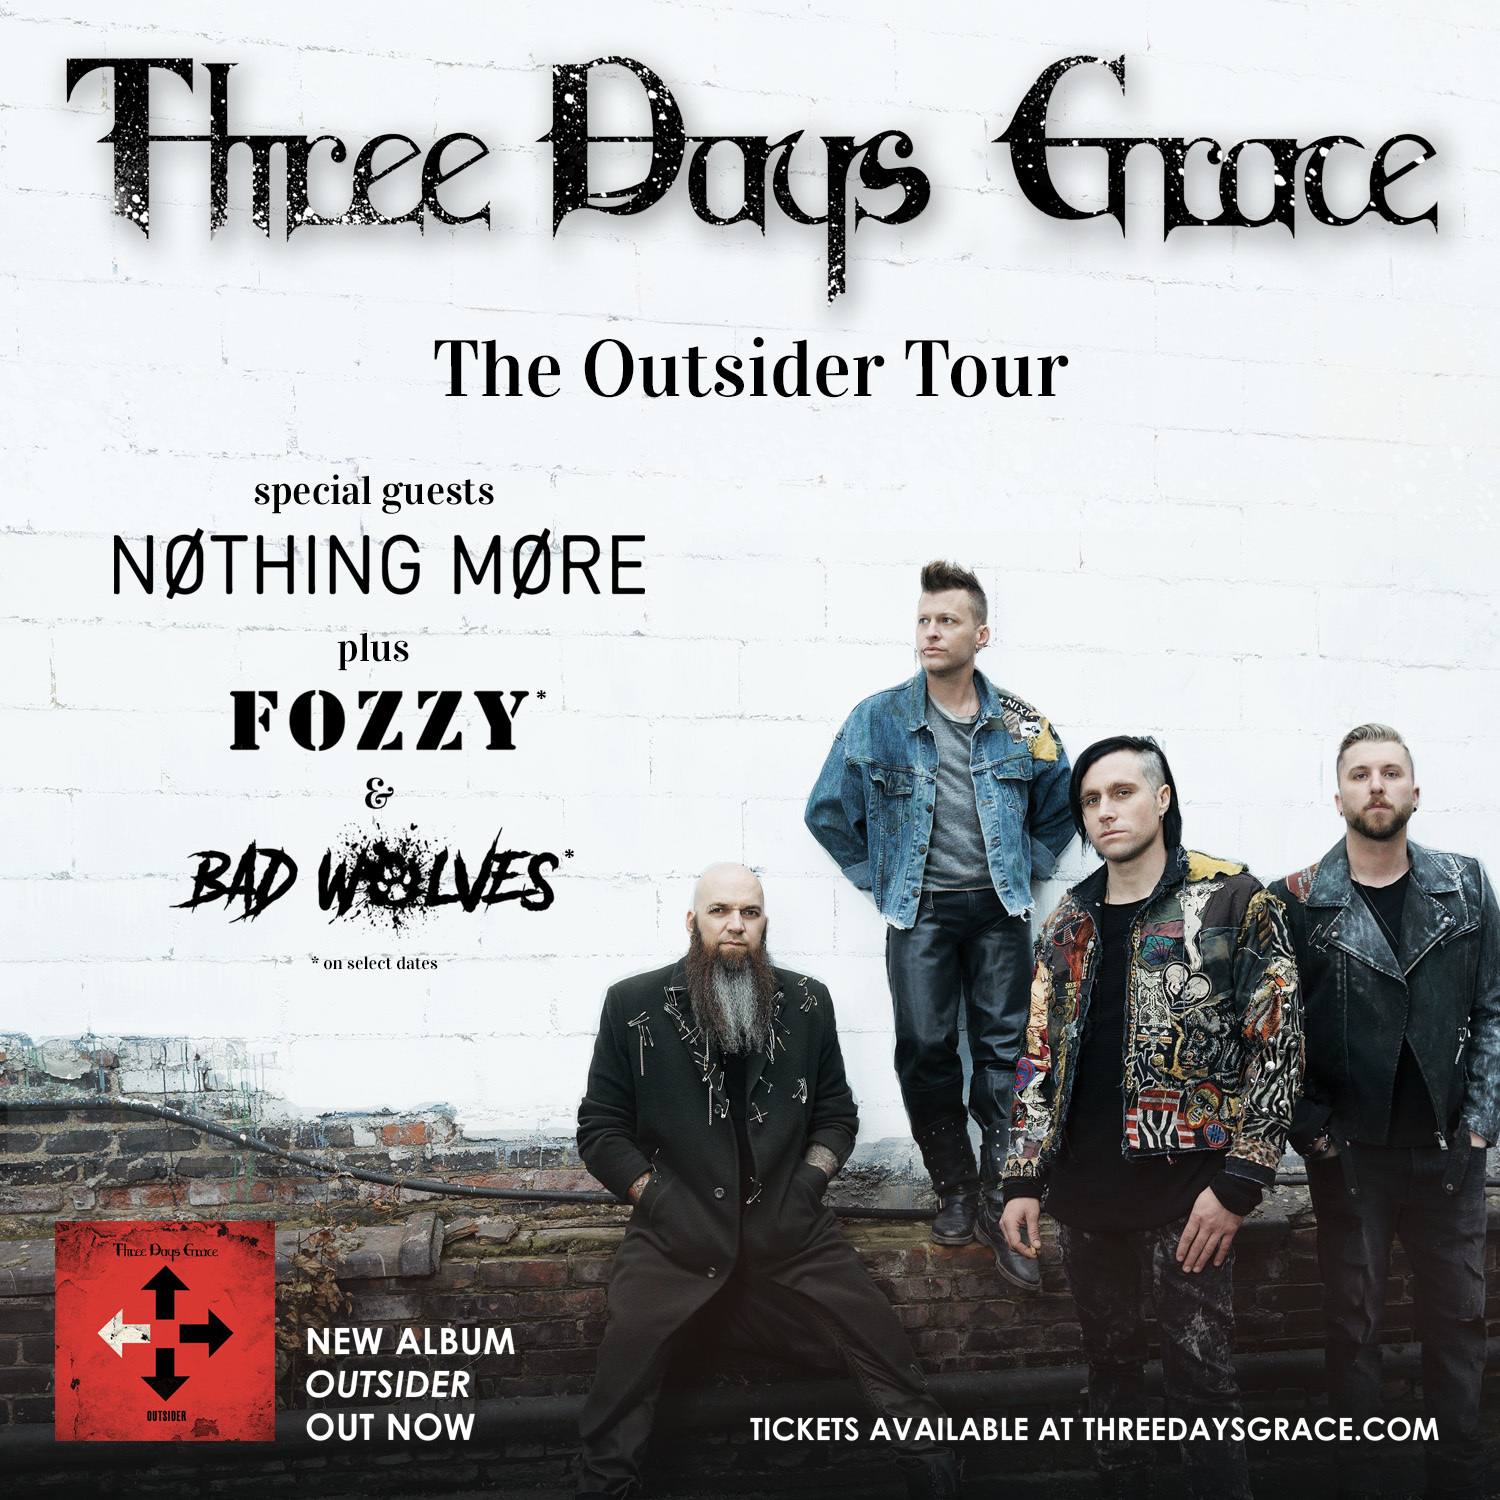 https://threedaysgrace.com/2018/07/16/the-outsider-tour-in-canada-announced/